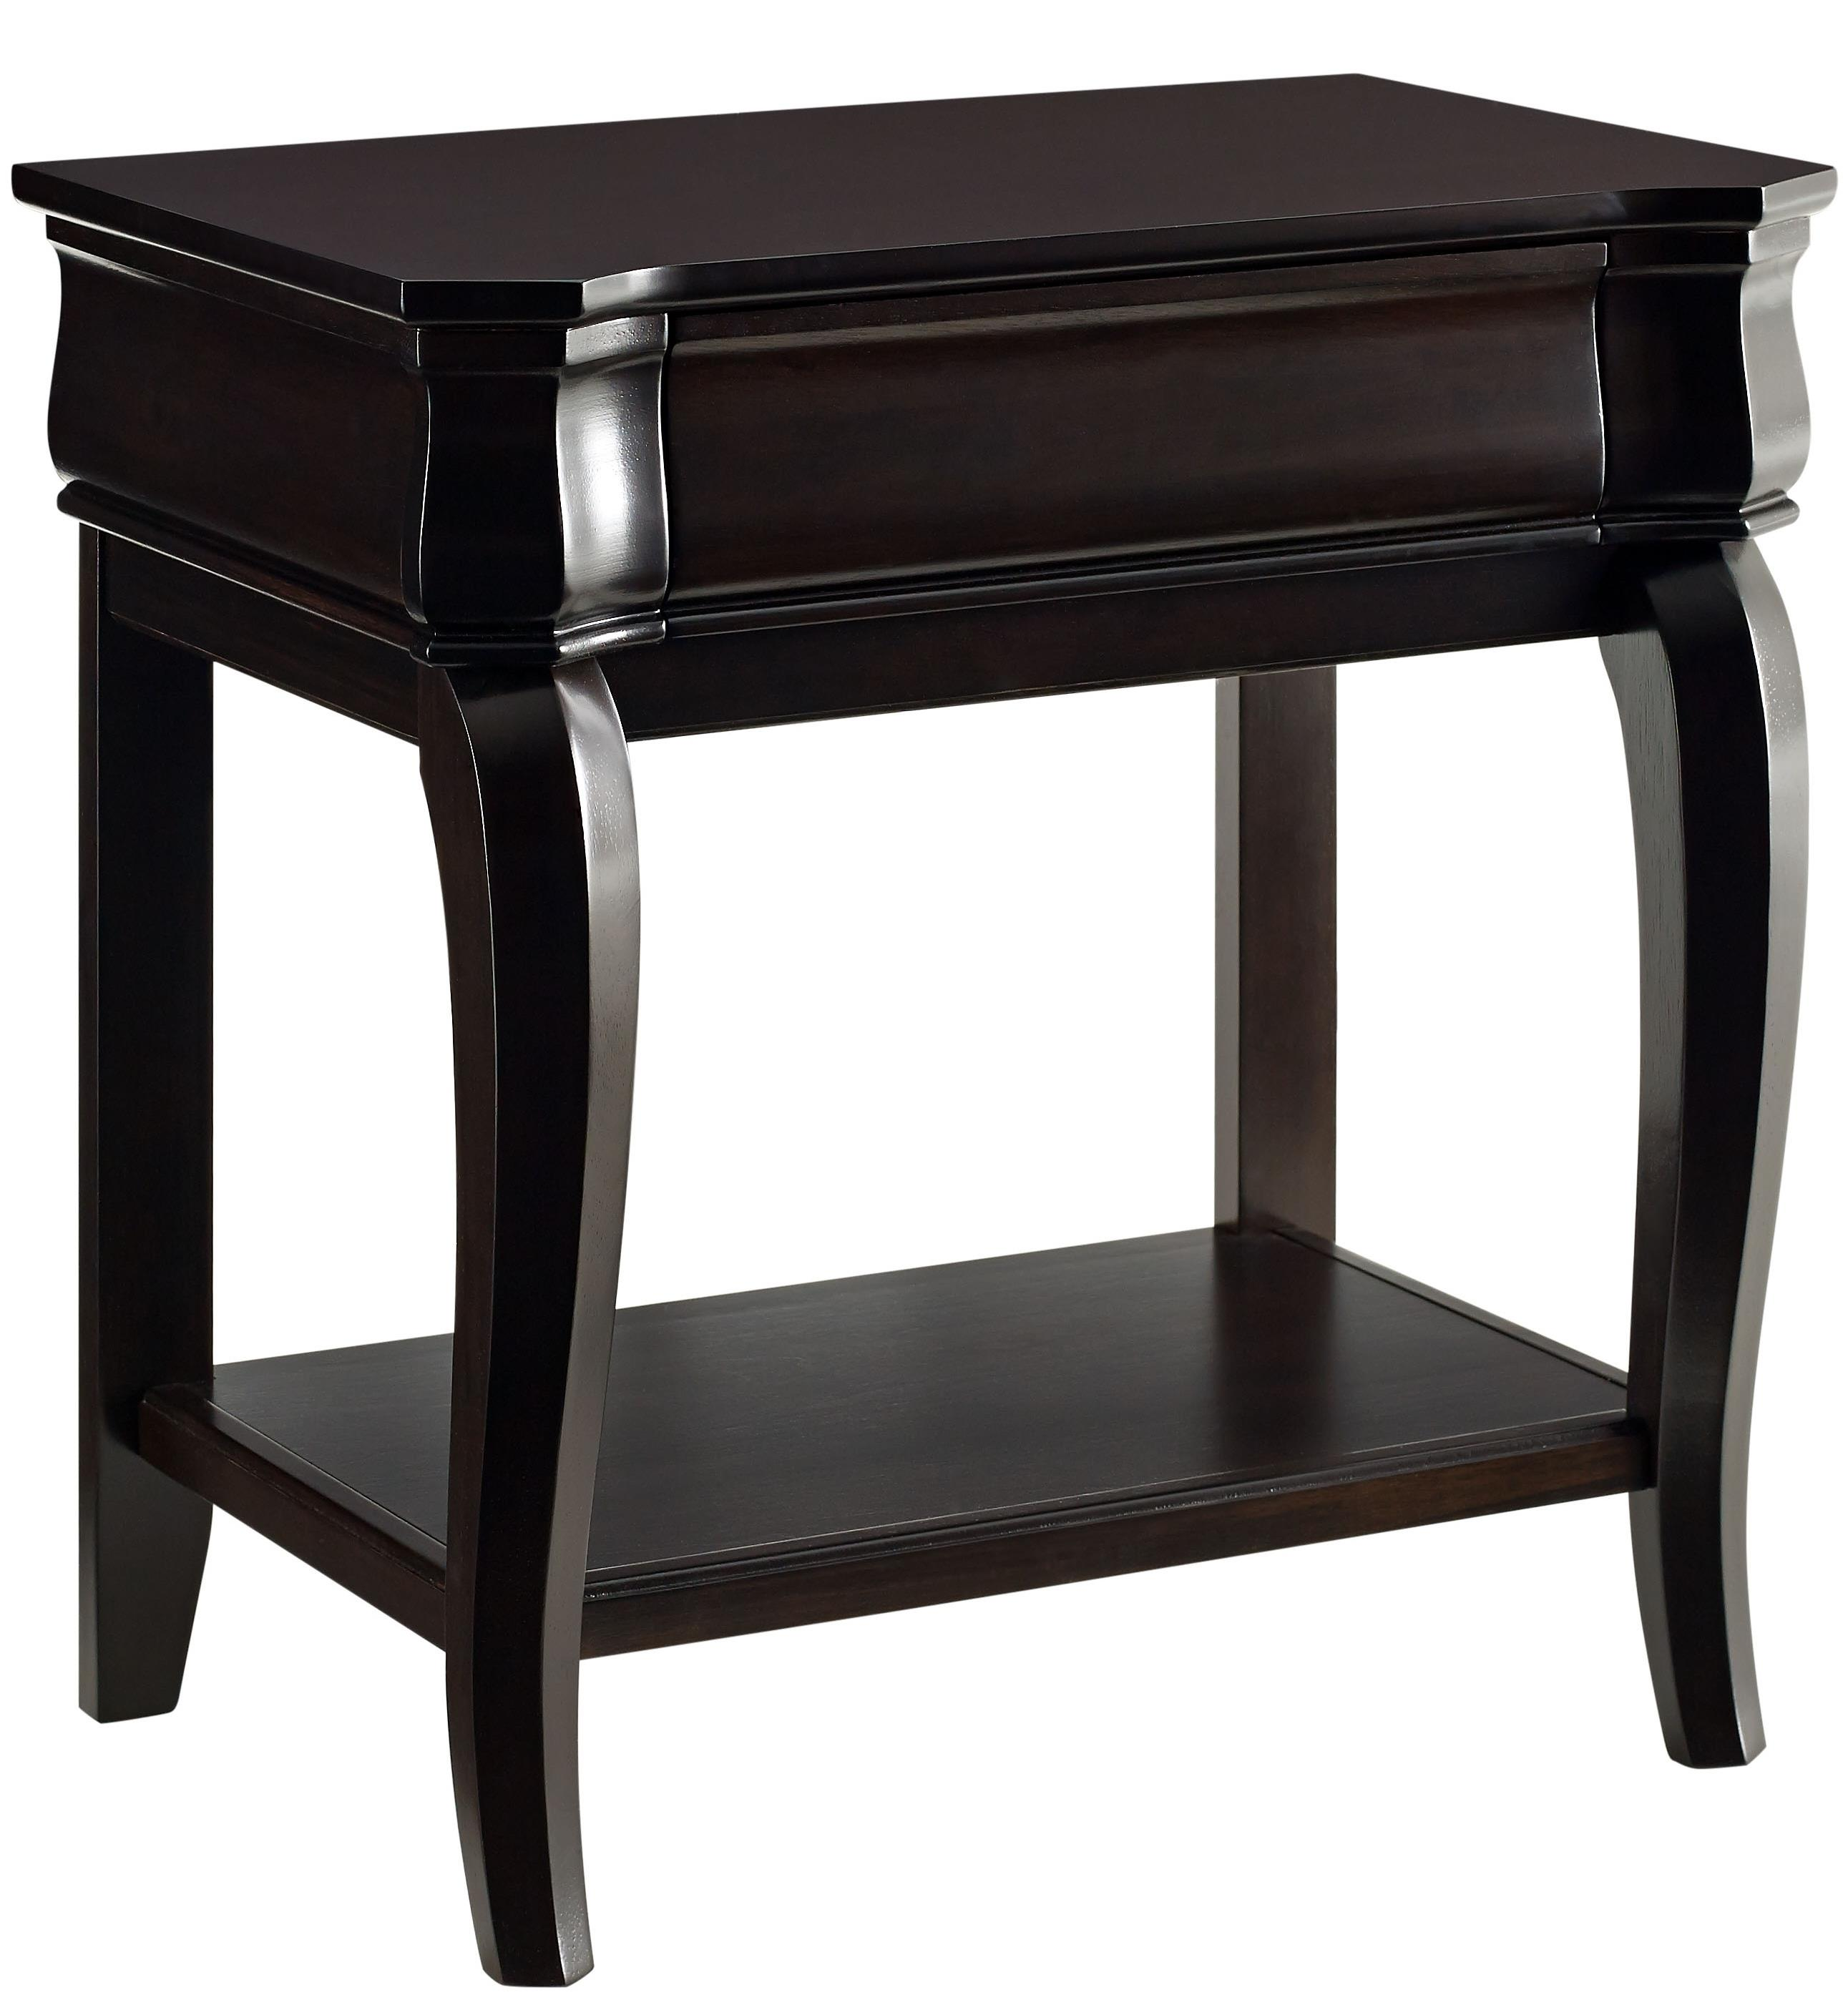 Broyhill Furniture Aryell Night Table - Item Number: 4907-291